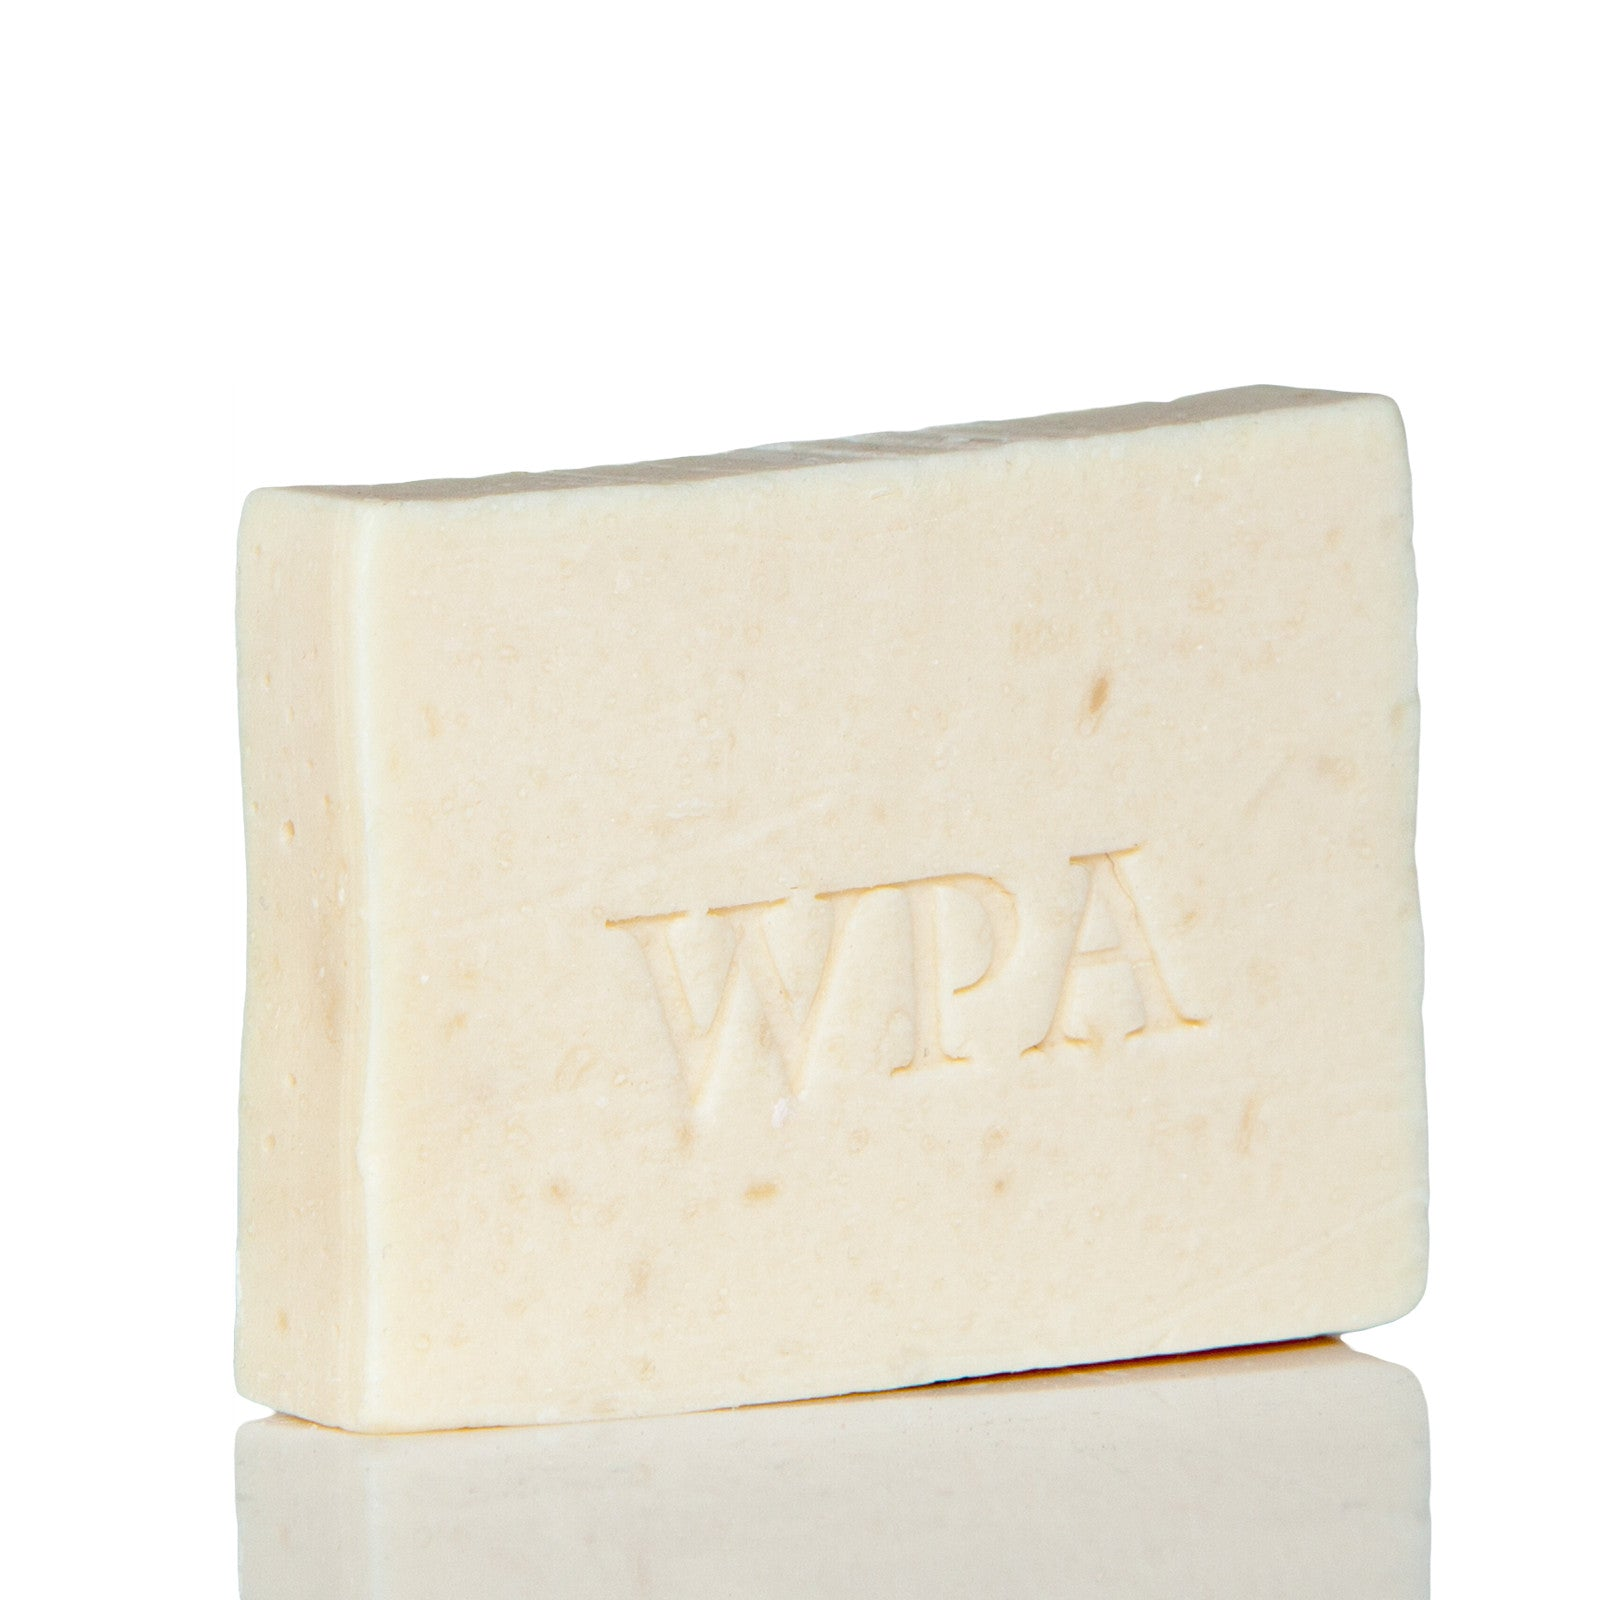 Charleston & Sweetgrass Argan Oil & Shea Butter Cold Pressed Soap by Wayne Powers Apothecary